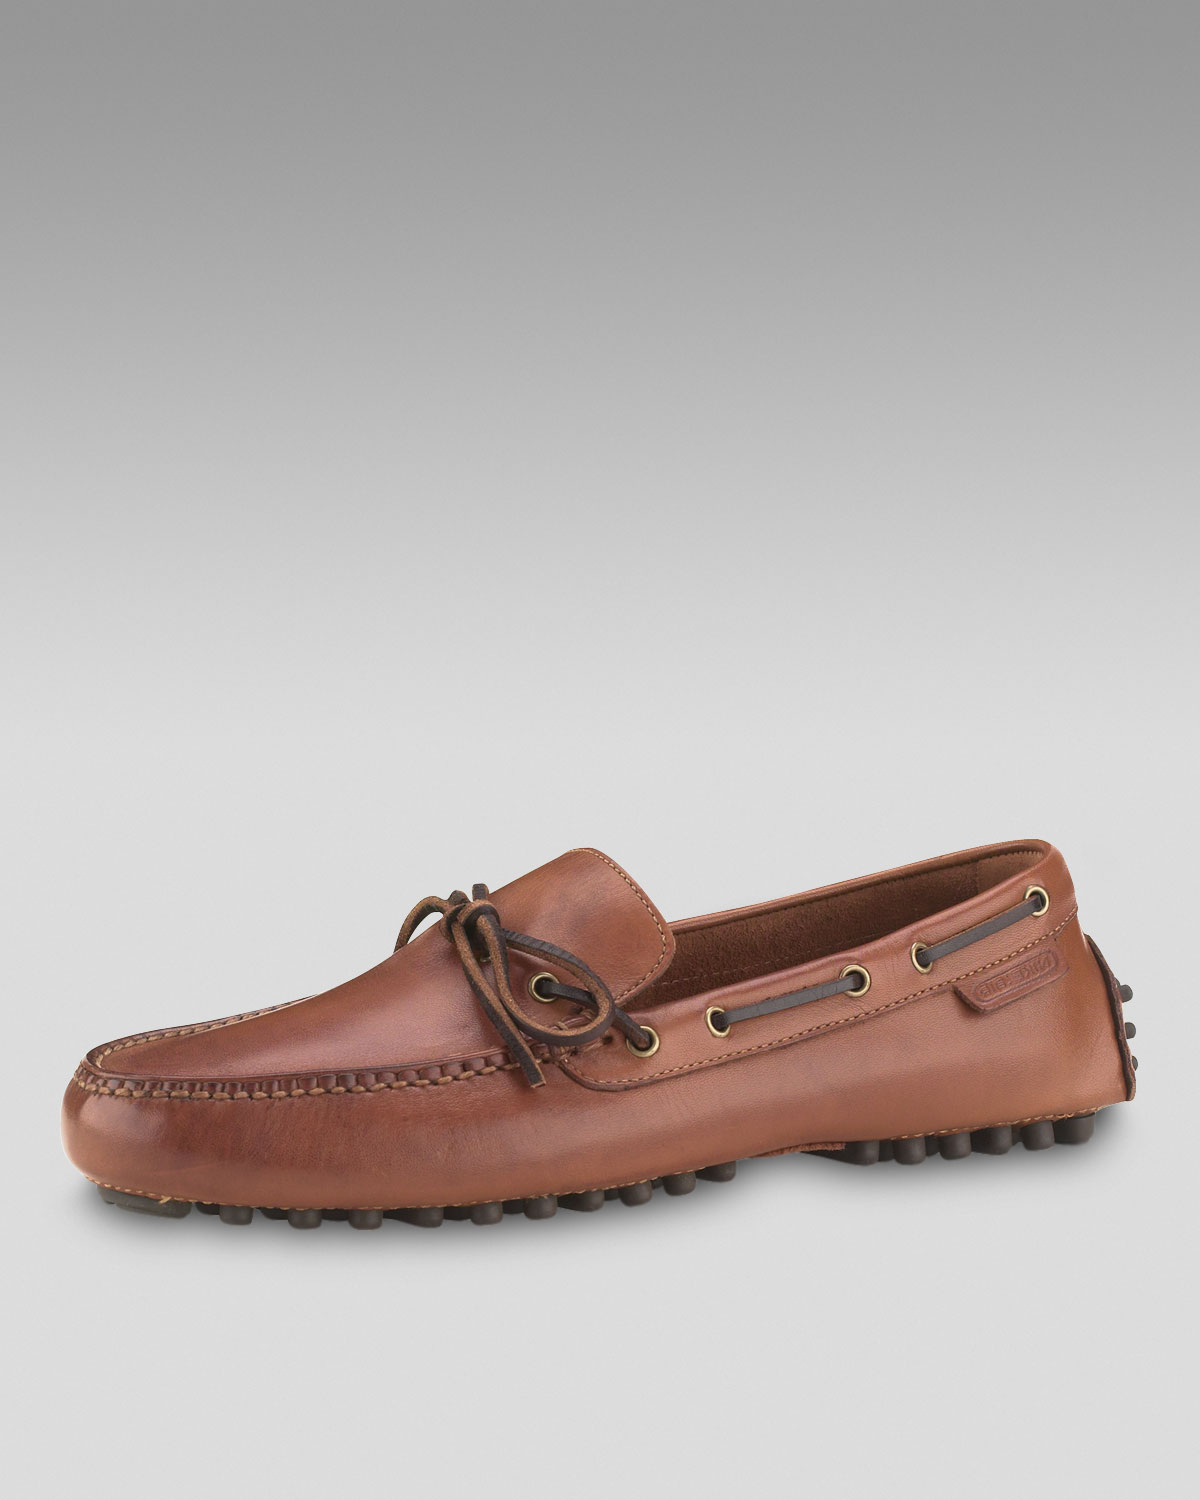 ae81b4adf03 Cole Haan Air Grant Moccasin in Brown for Men - Lyst